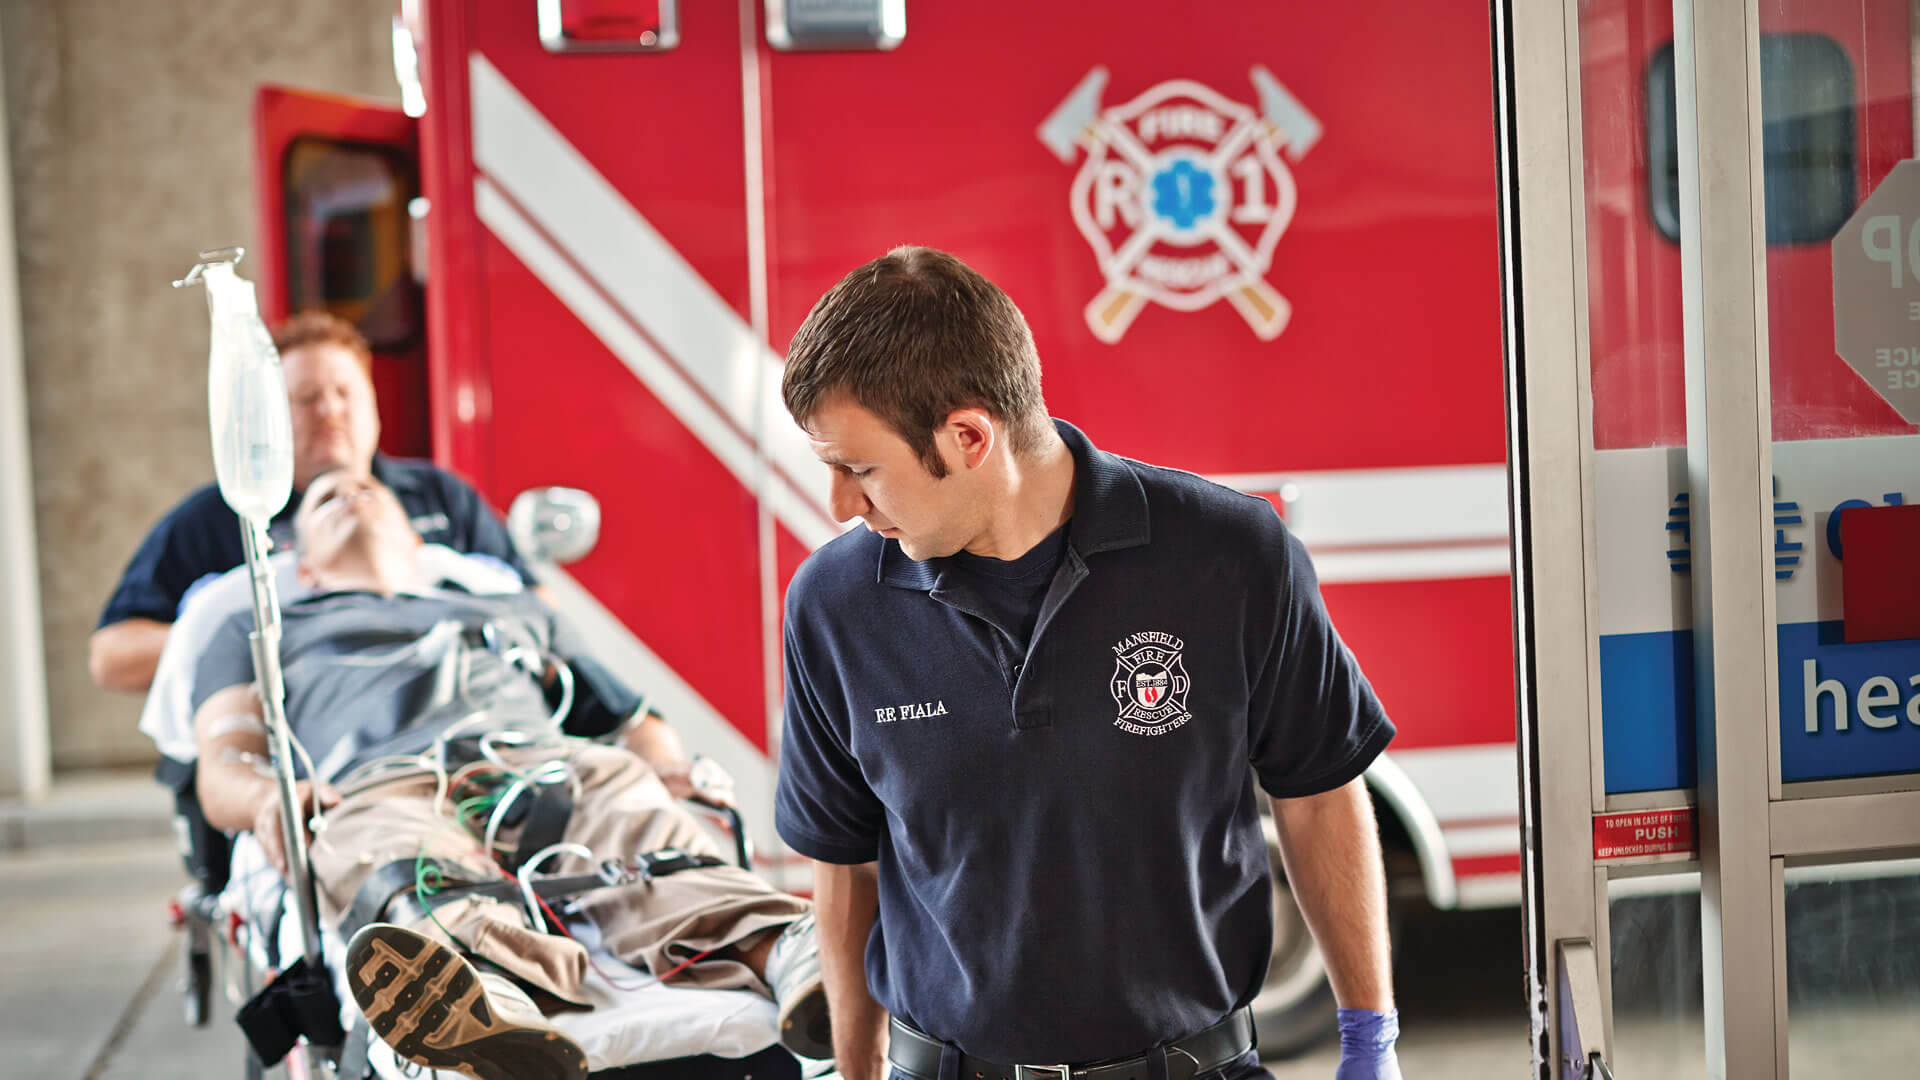 Ohiohealth Emergency Medical Services